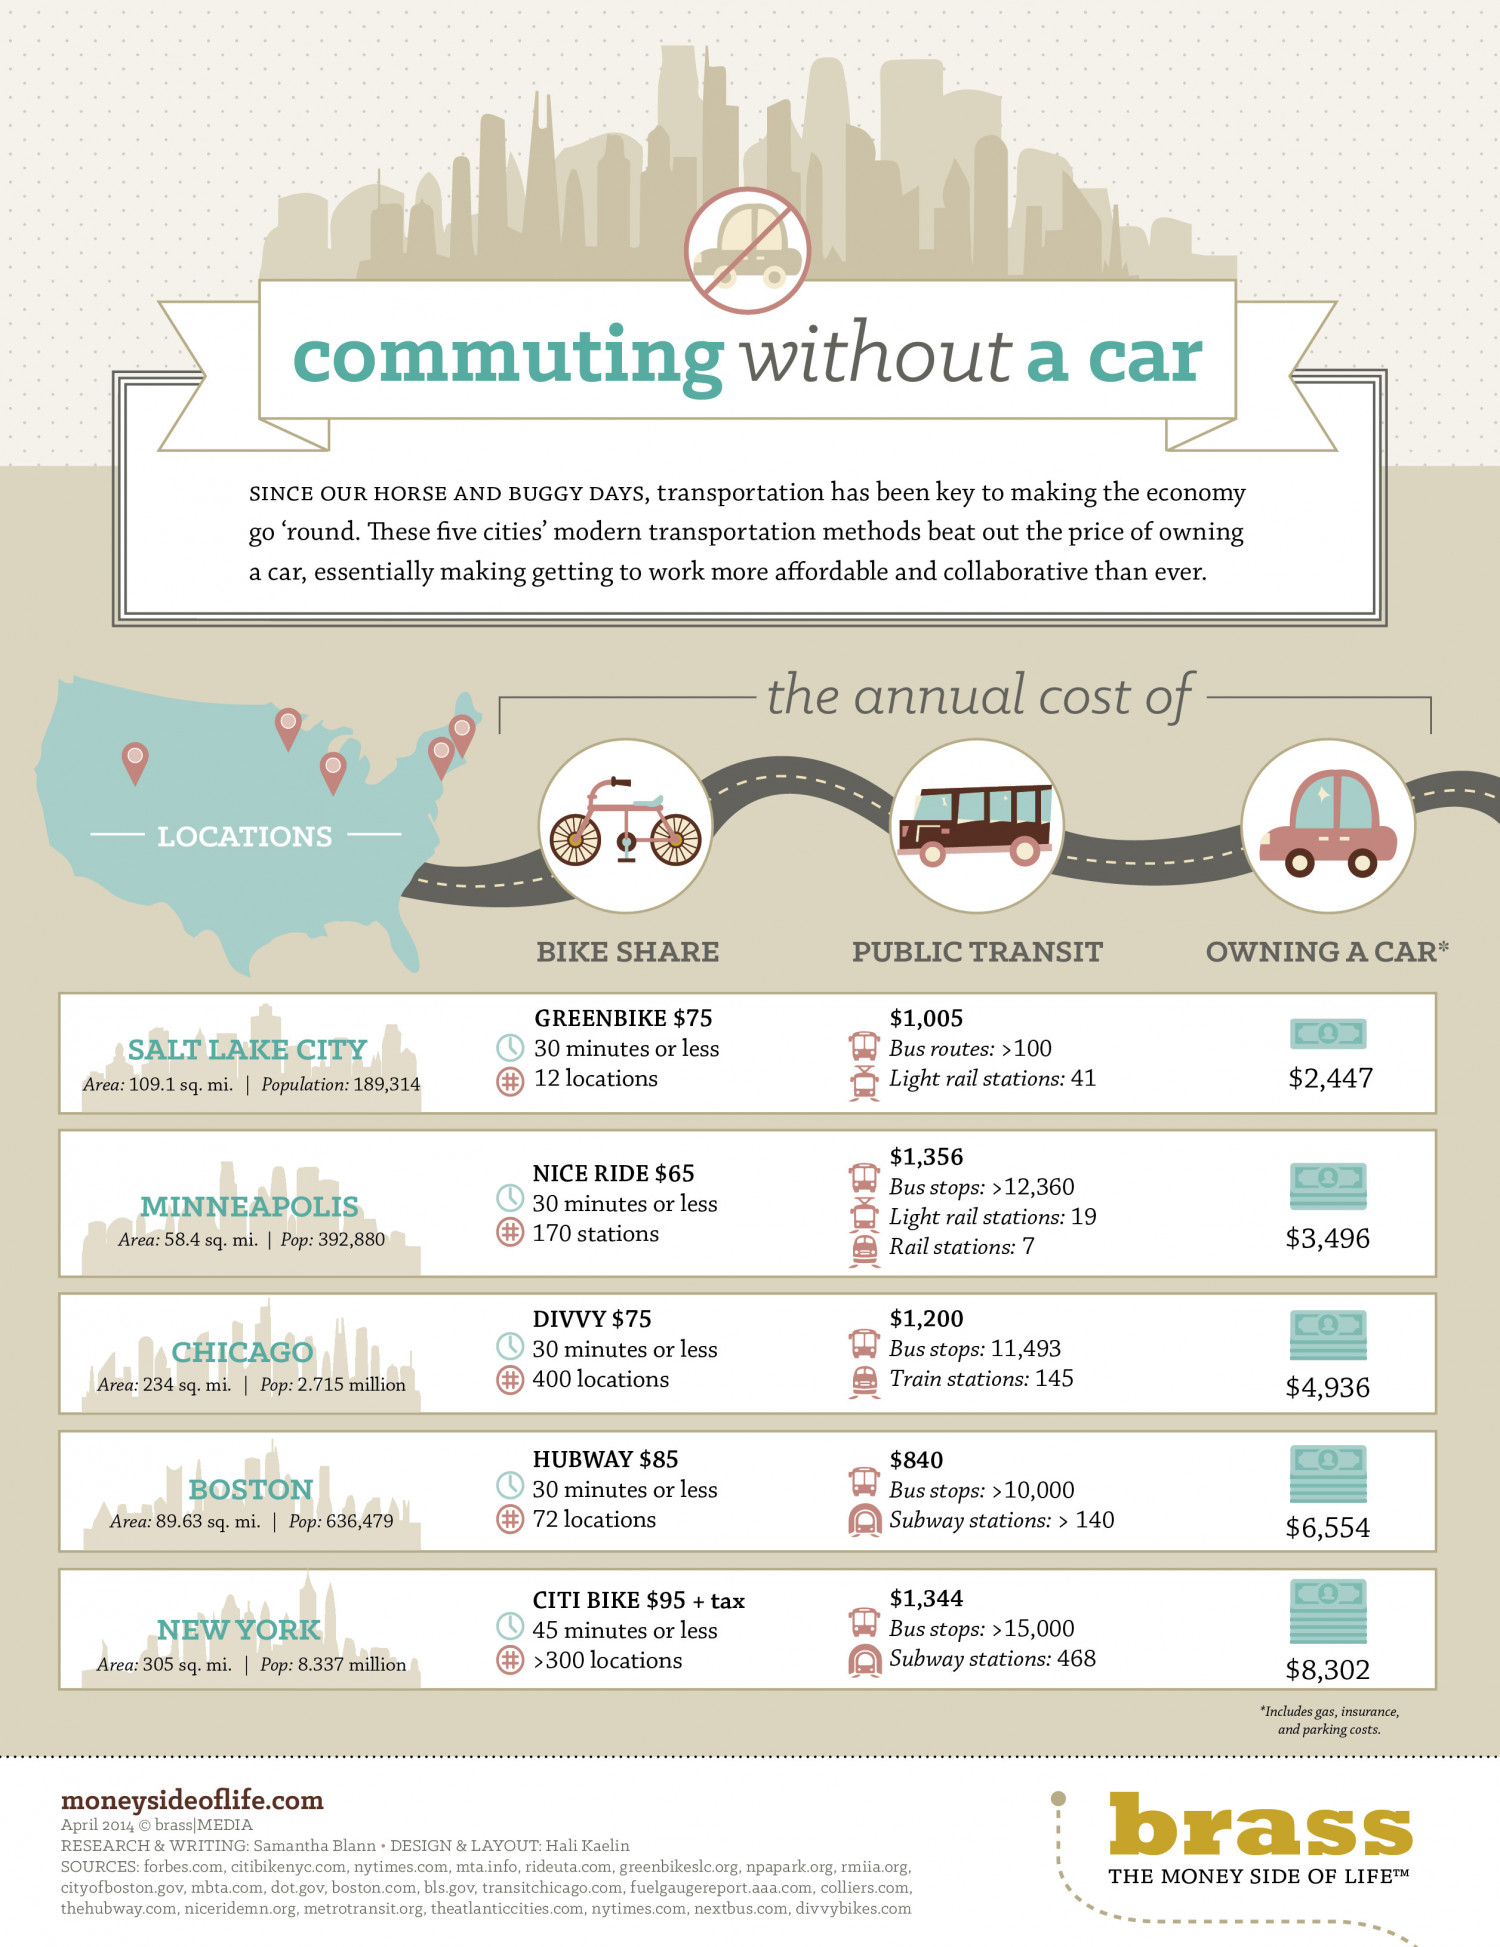 Commuting Without a Car Infographic